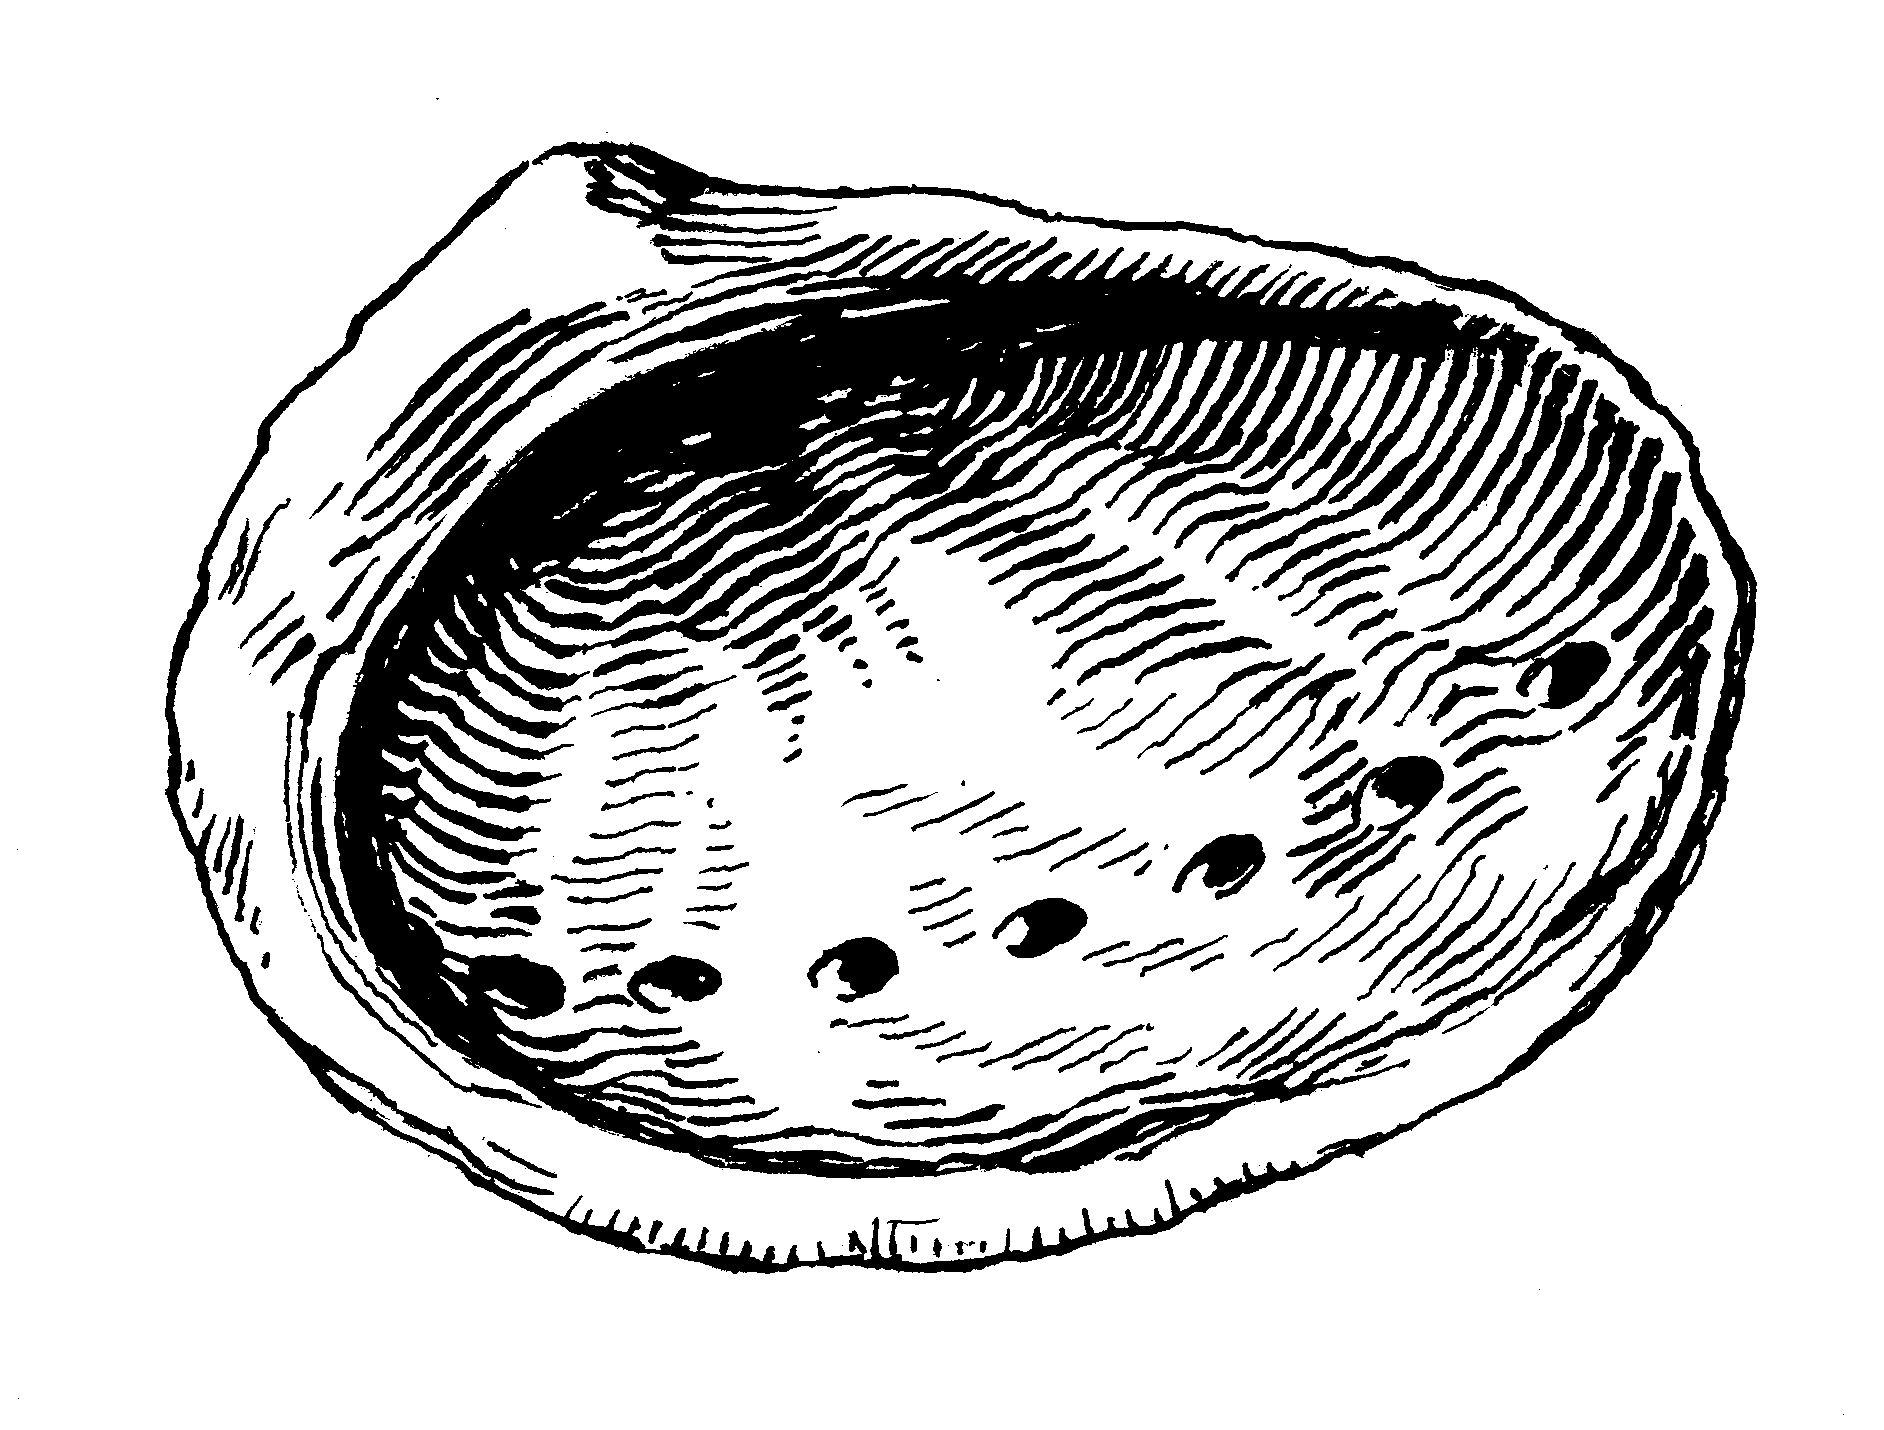 How To Draw An Abalone 5 Steps